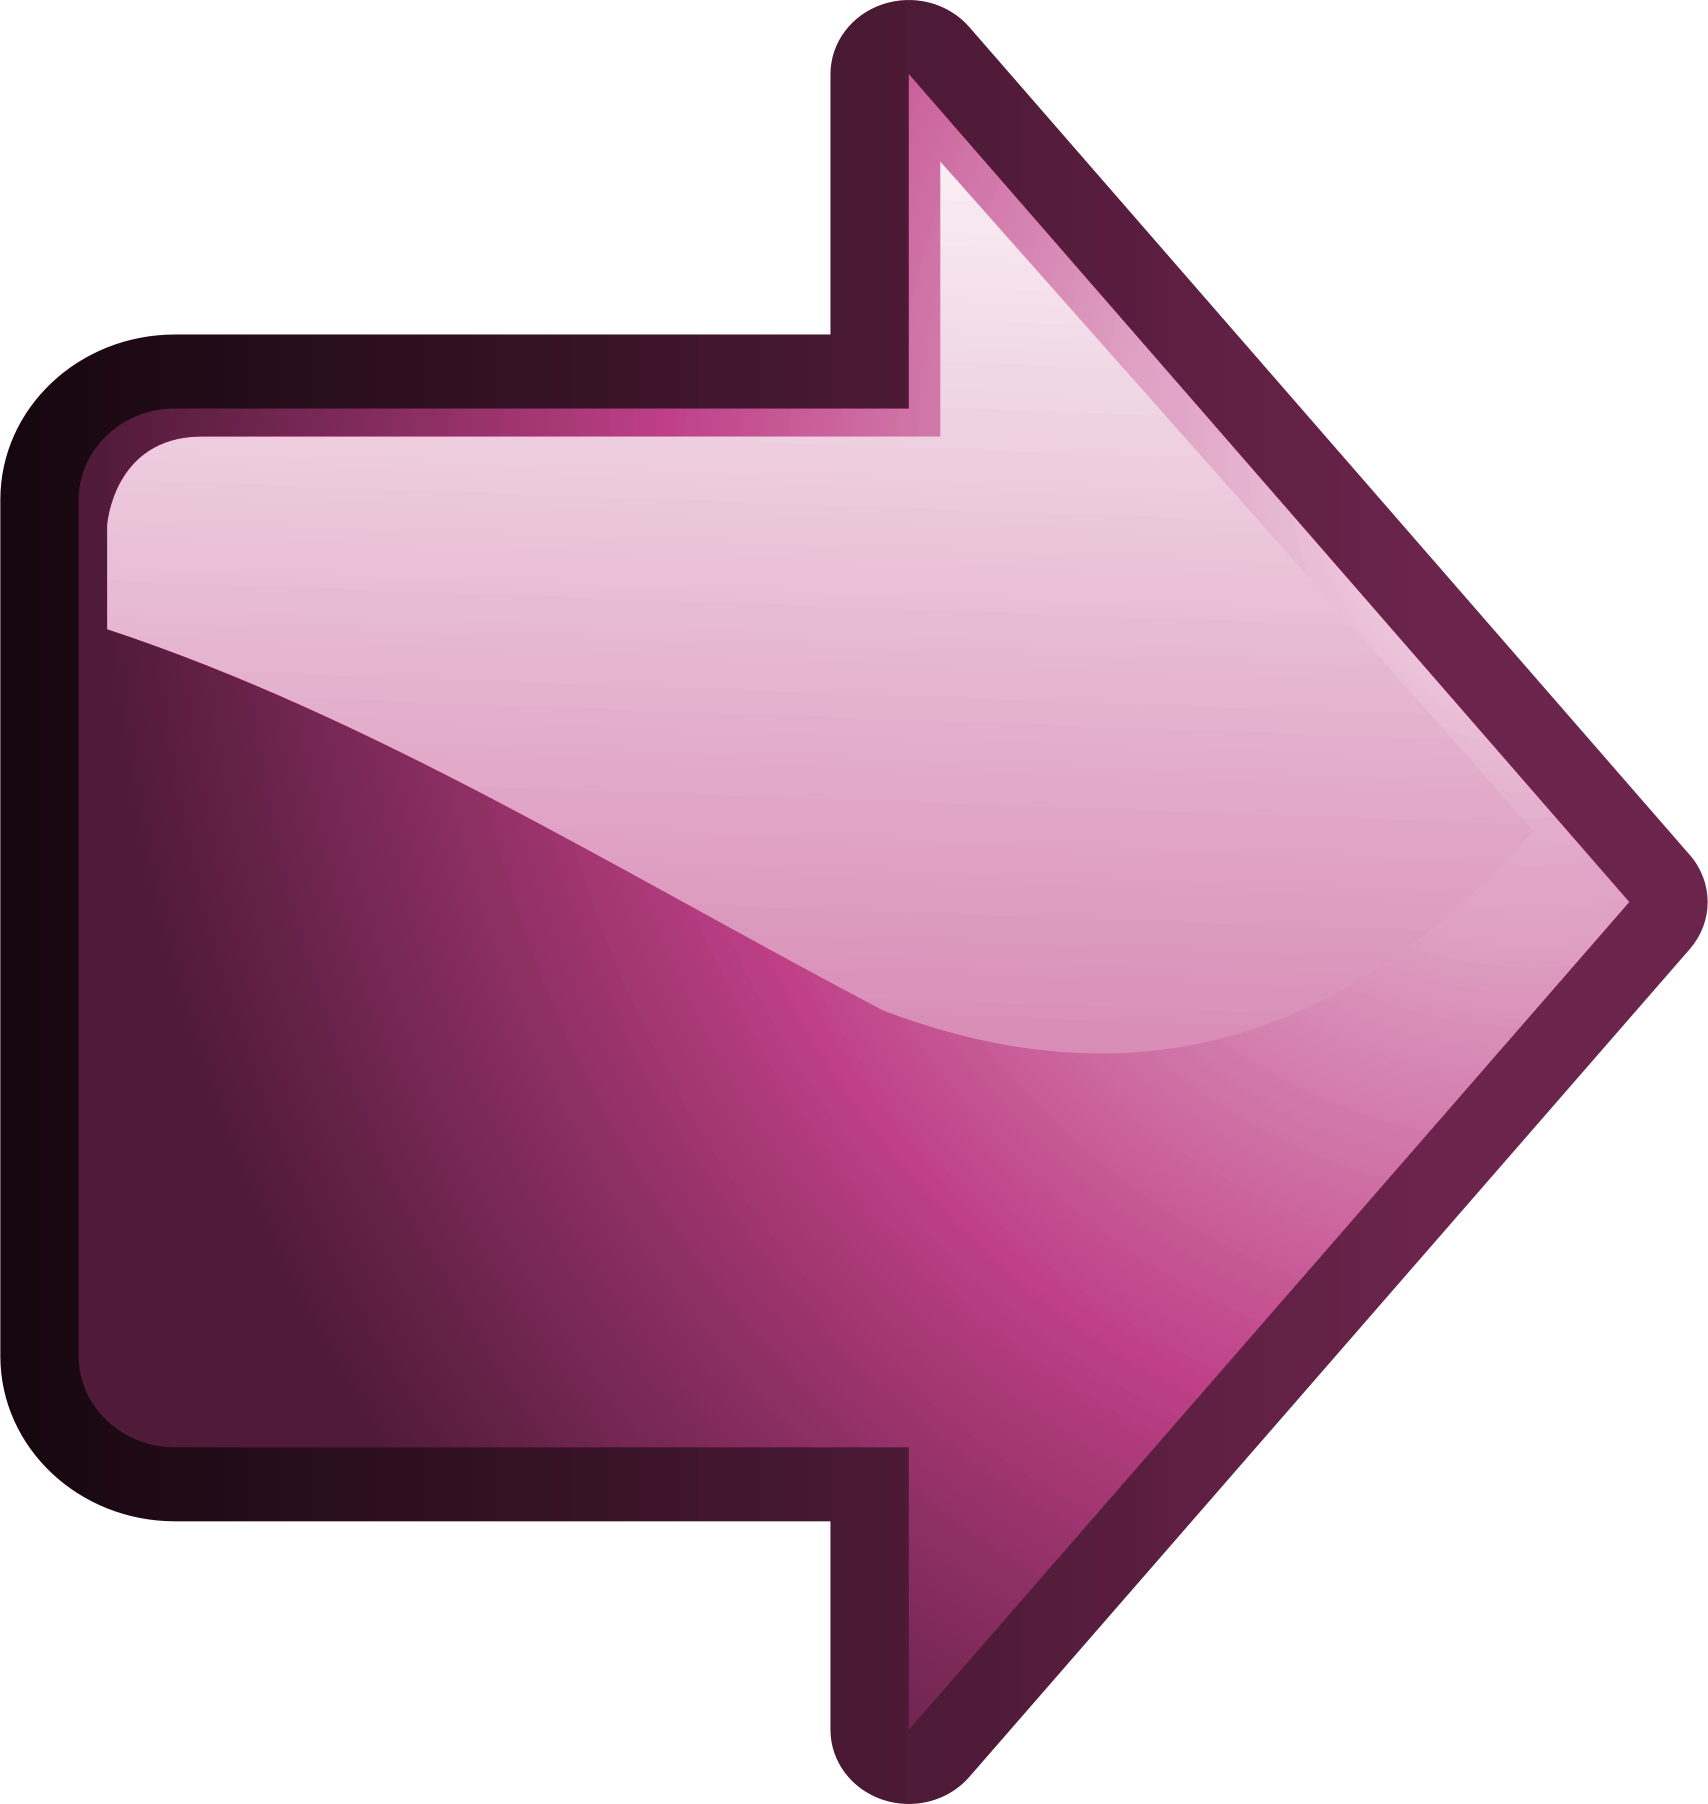 File:Nuvola arrow right pink.png  Wikimedia Commons